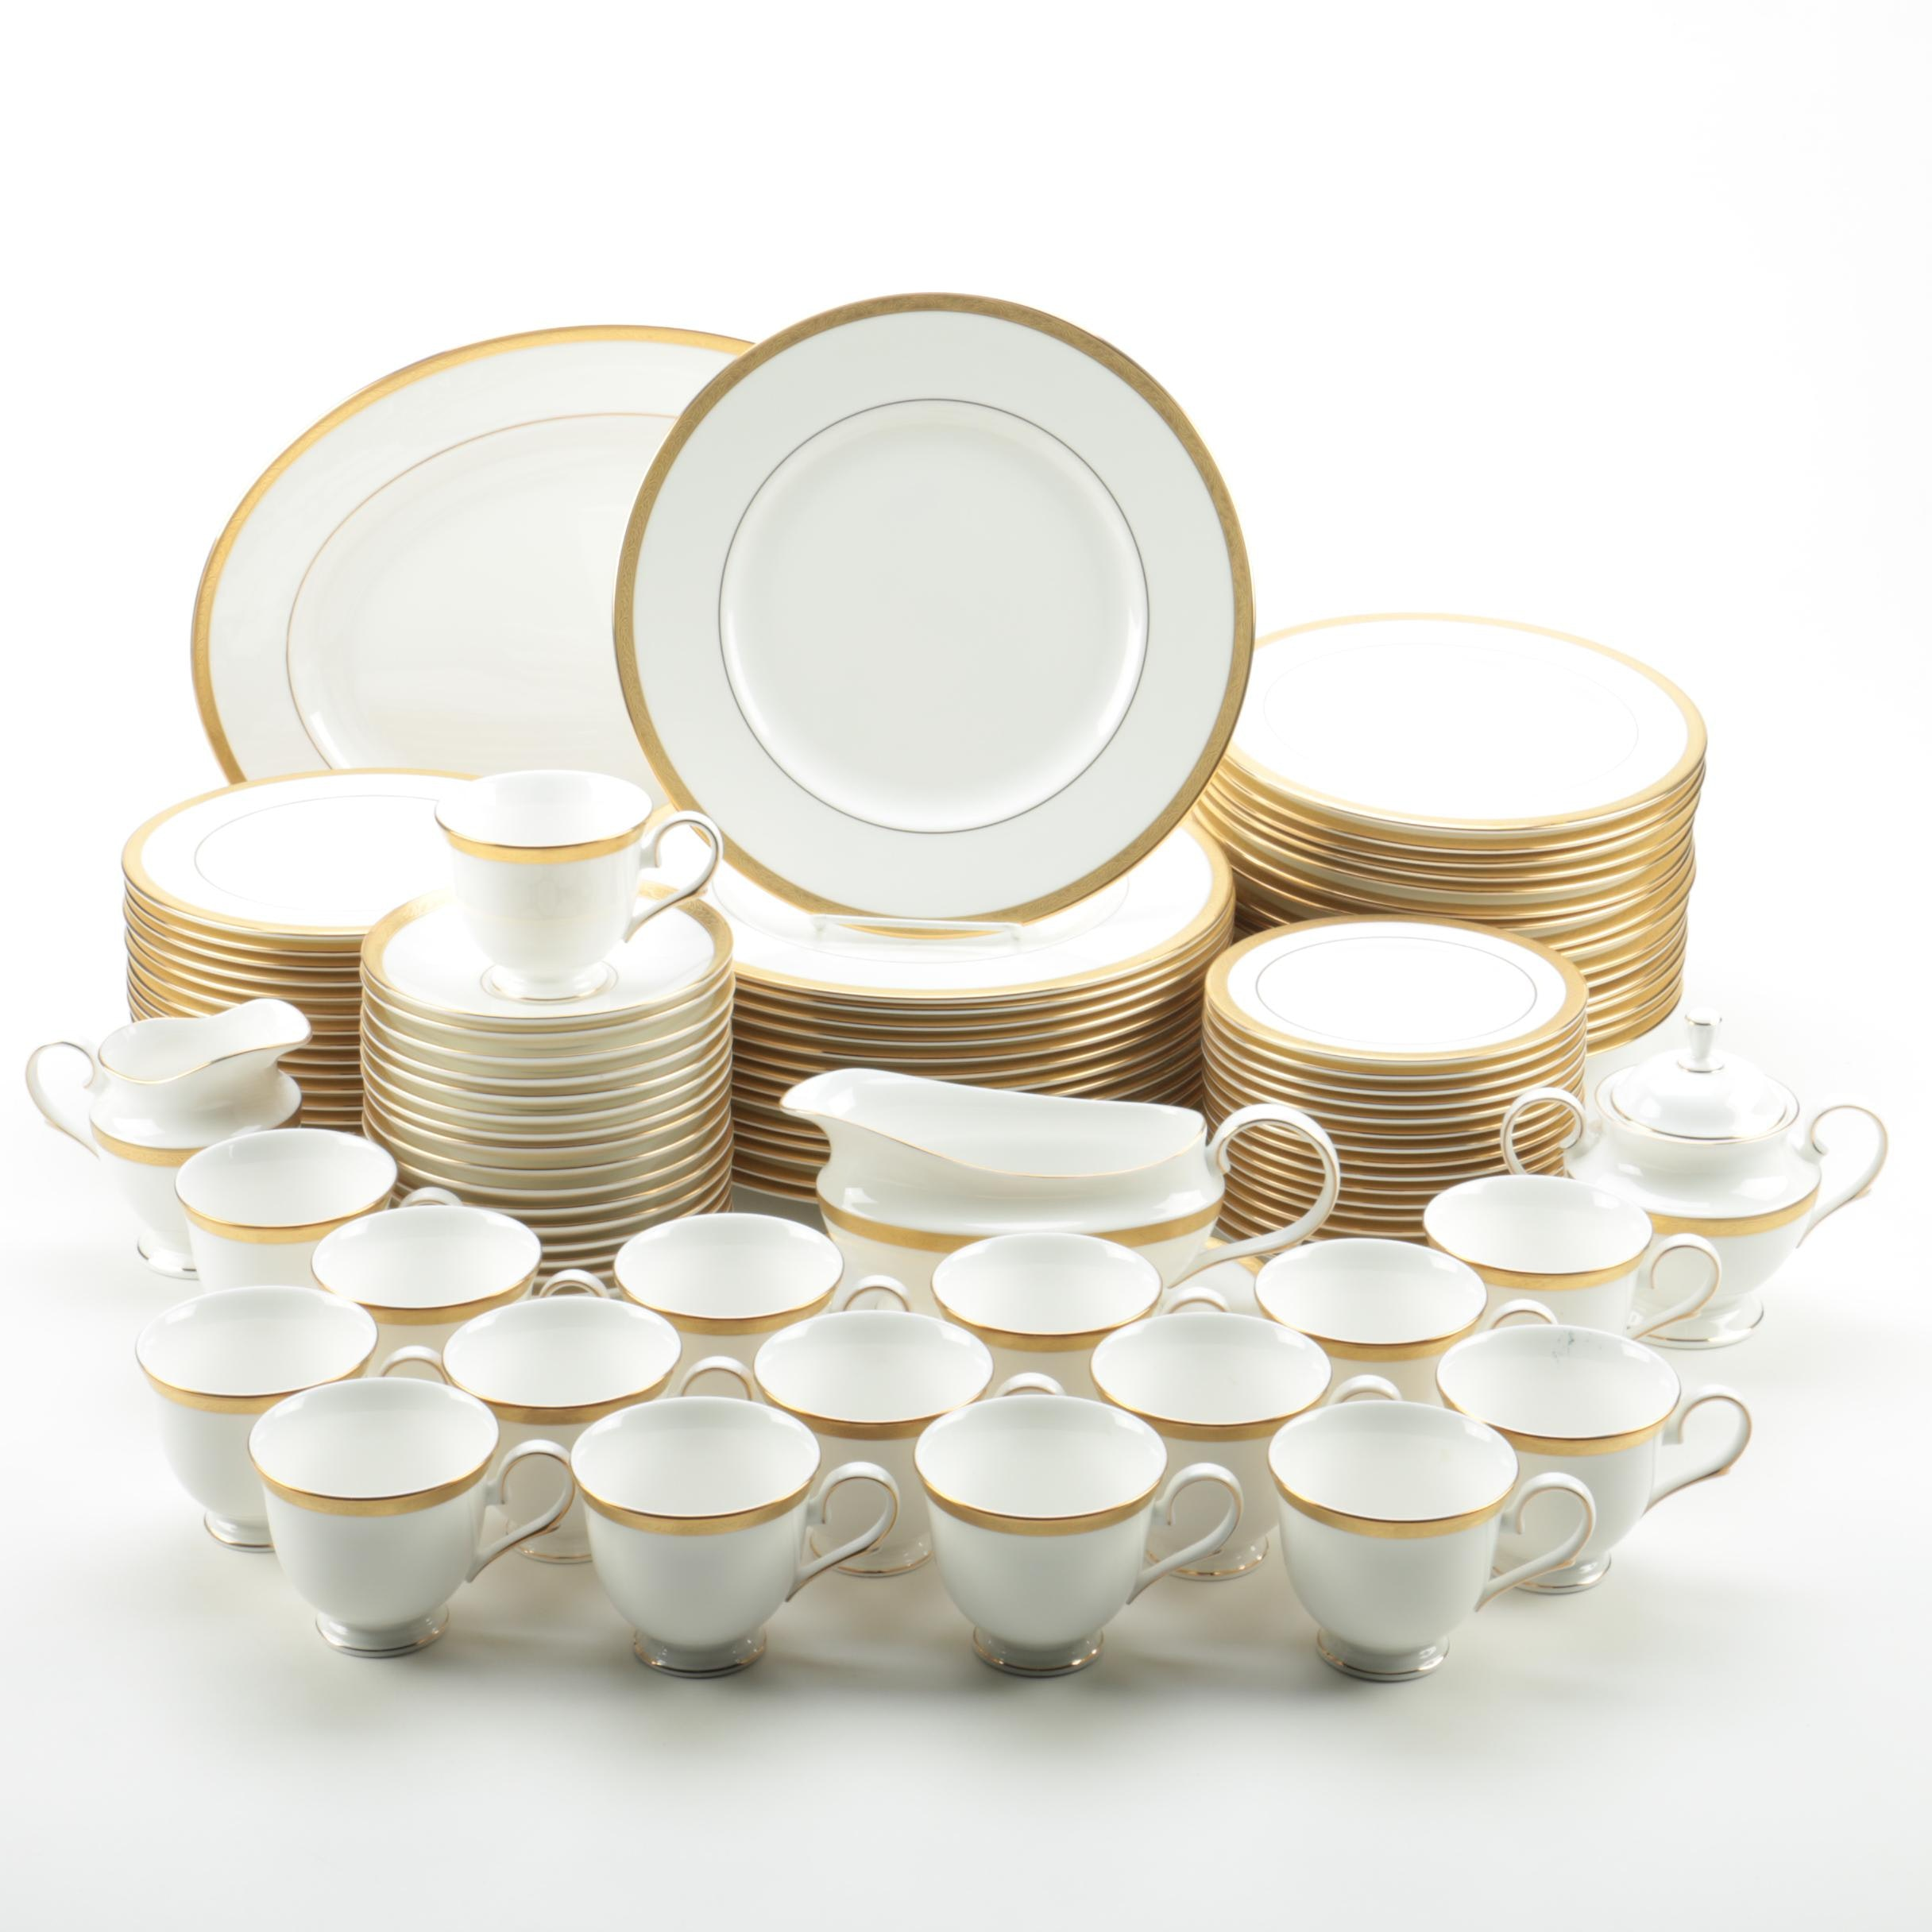 Lenox  Landmark Gold  Bone China Tableware ...  sc 1 st  EBTH.com & Lenox